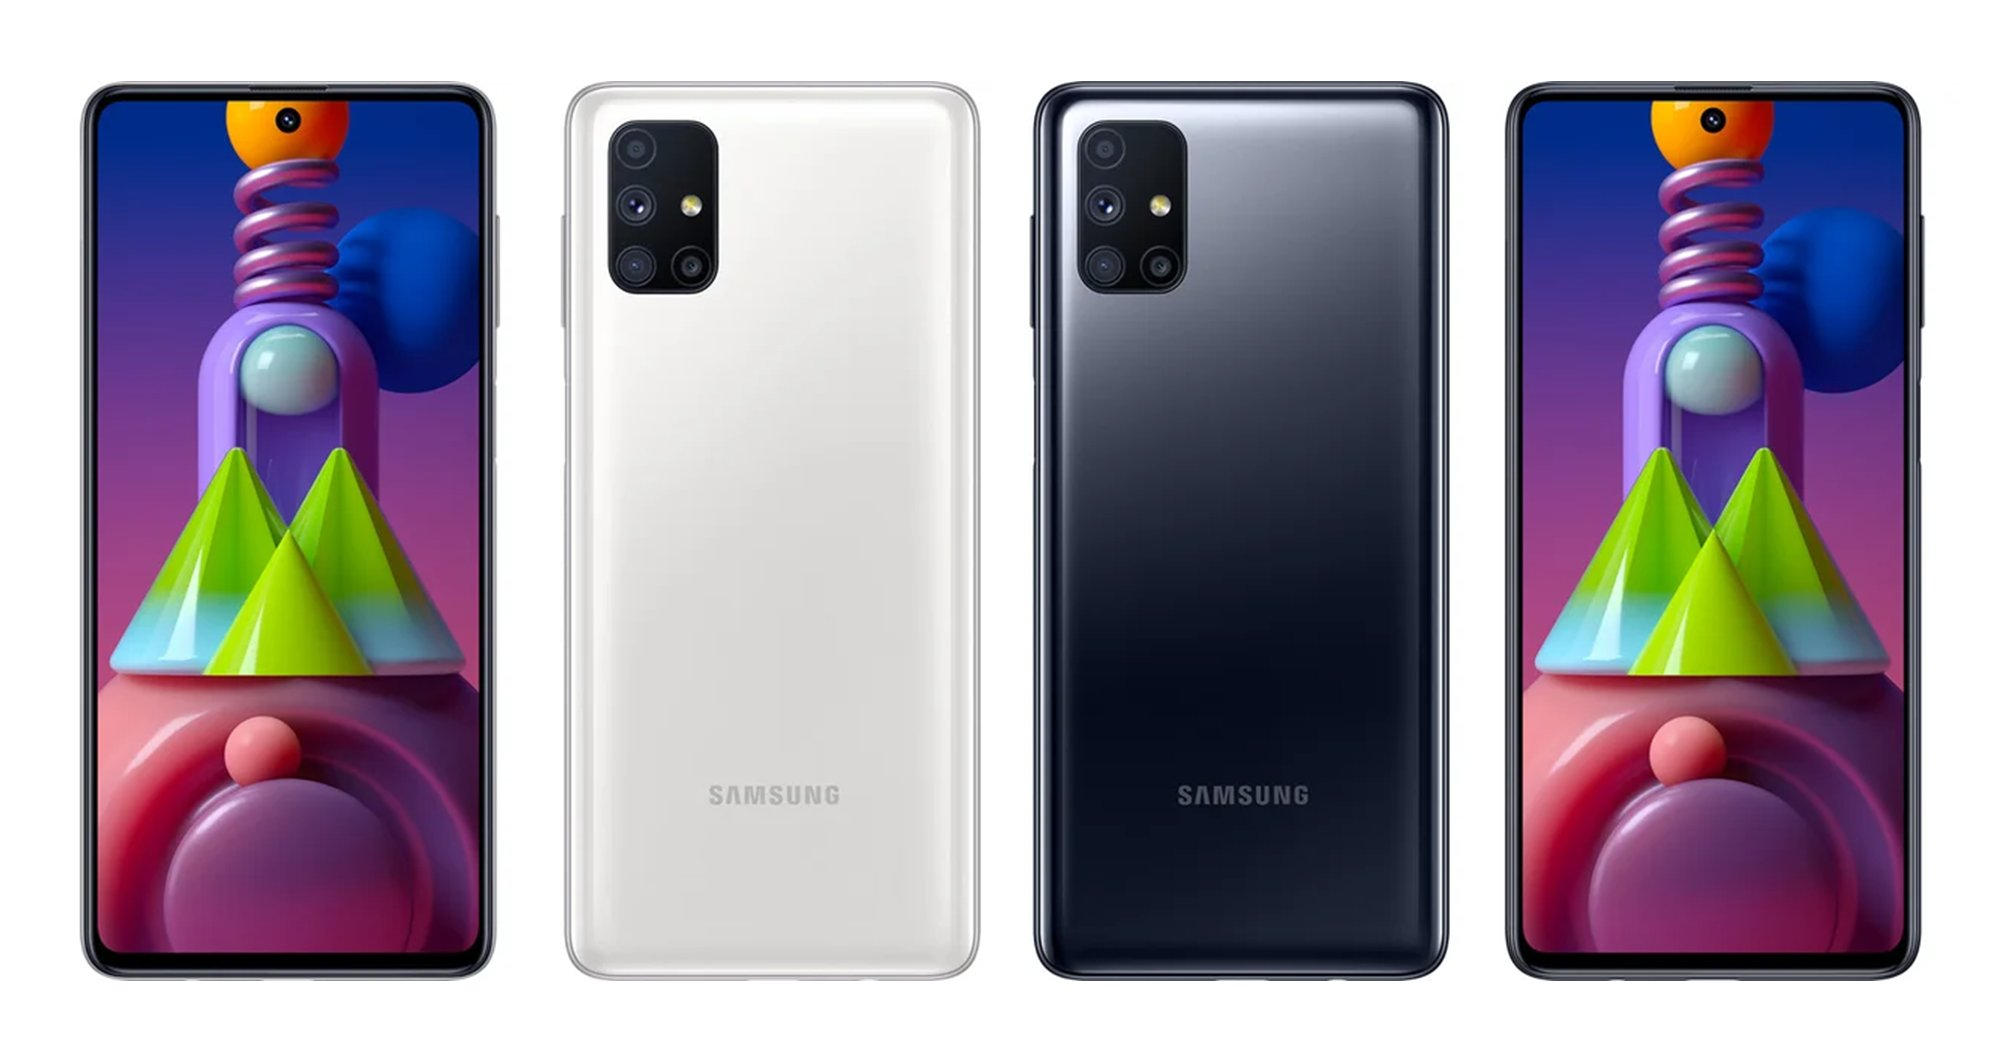 Samsung Galaxy M51 in poze oficiale, design confirmat